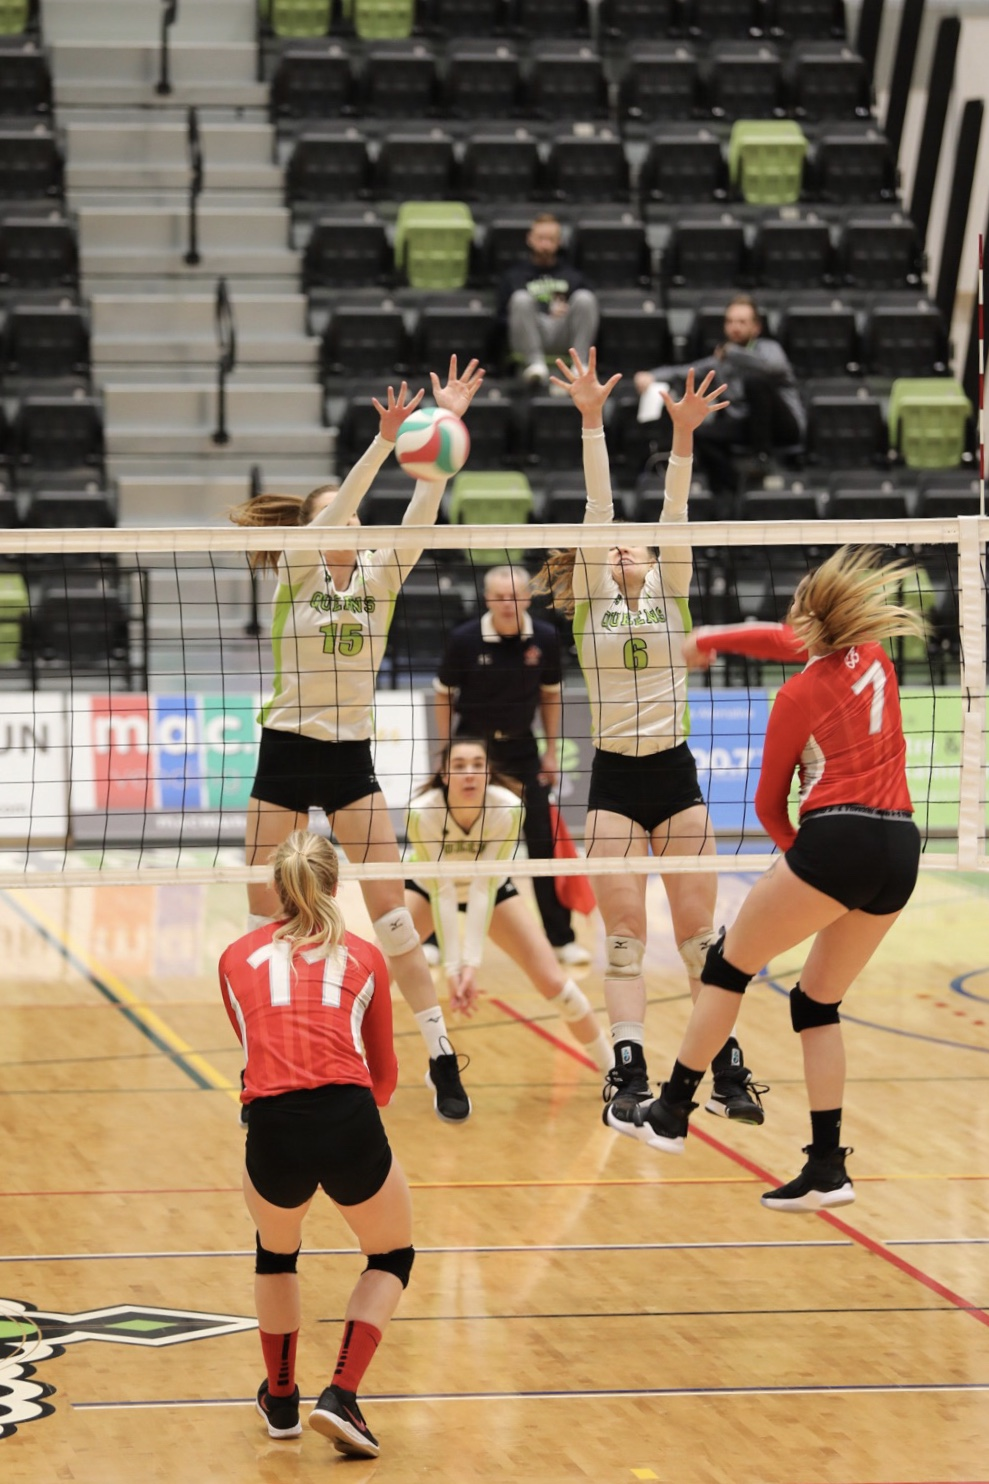 In a close battle, Queens edge Trojans in five sets